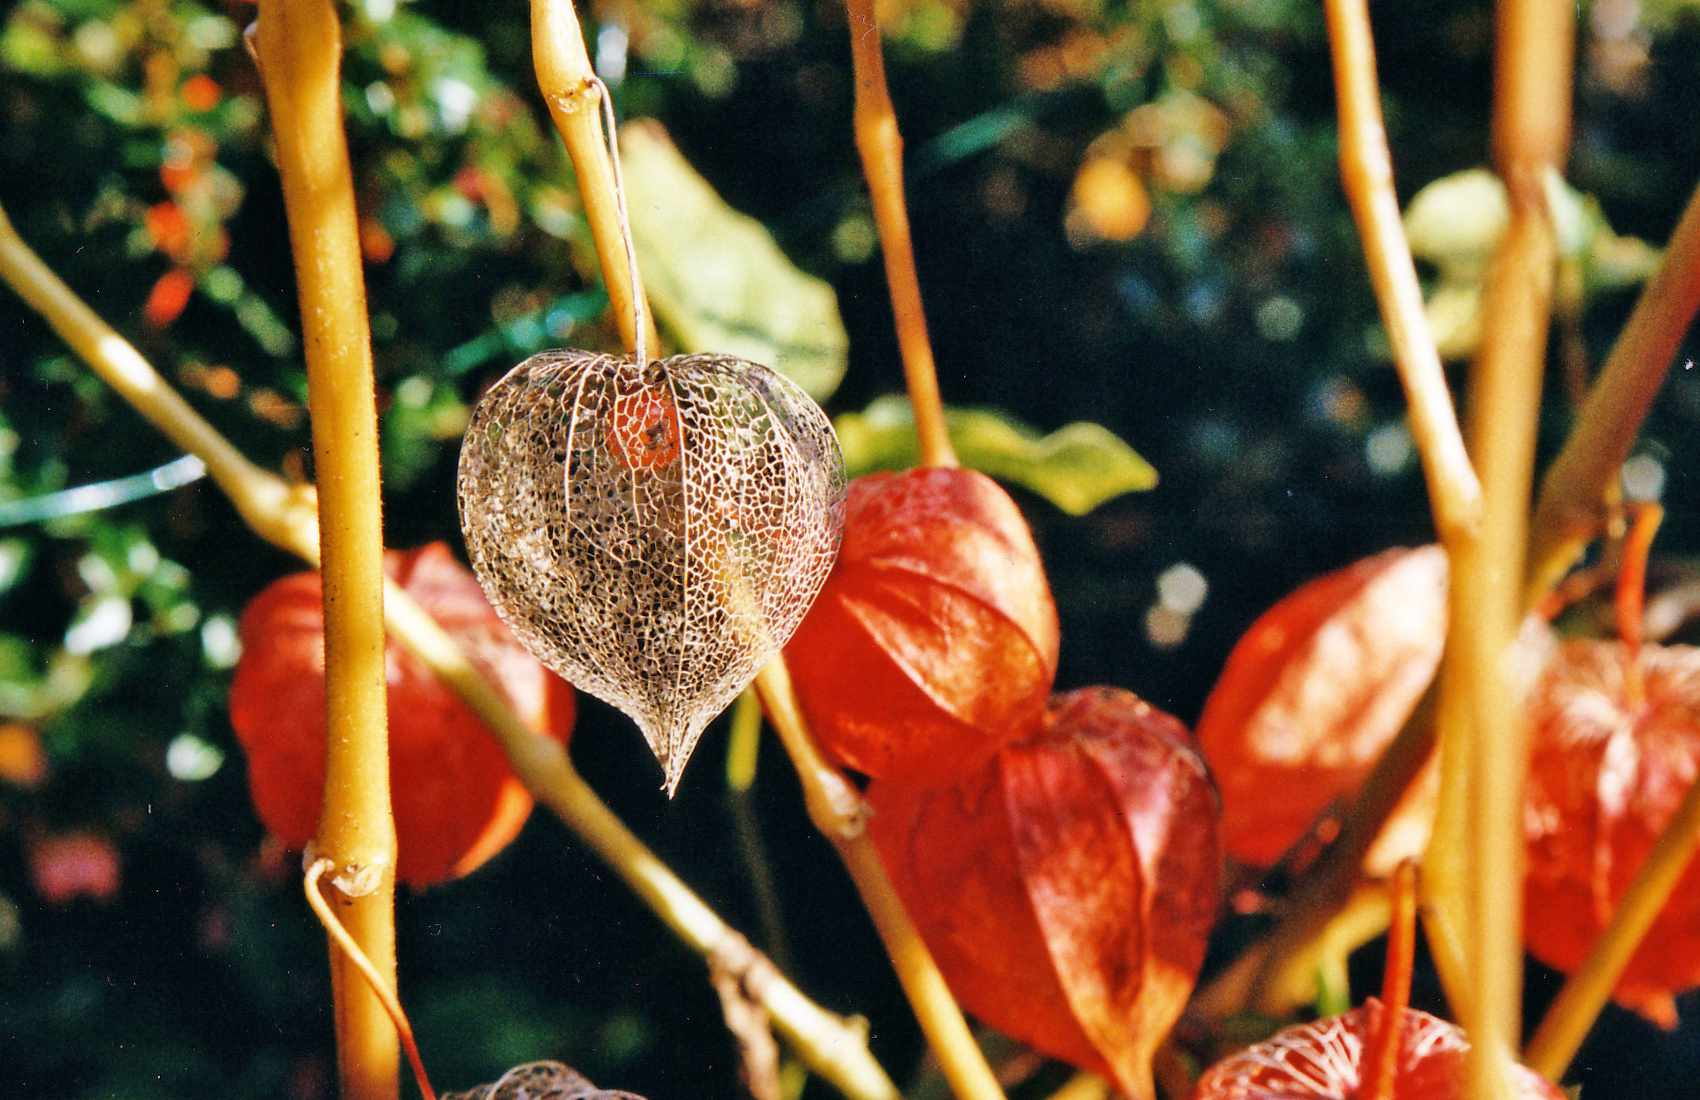 A close-up of Chinese lantern plants